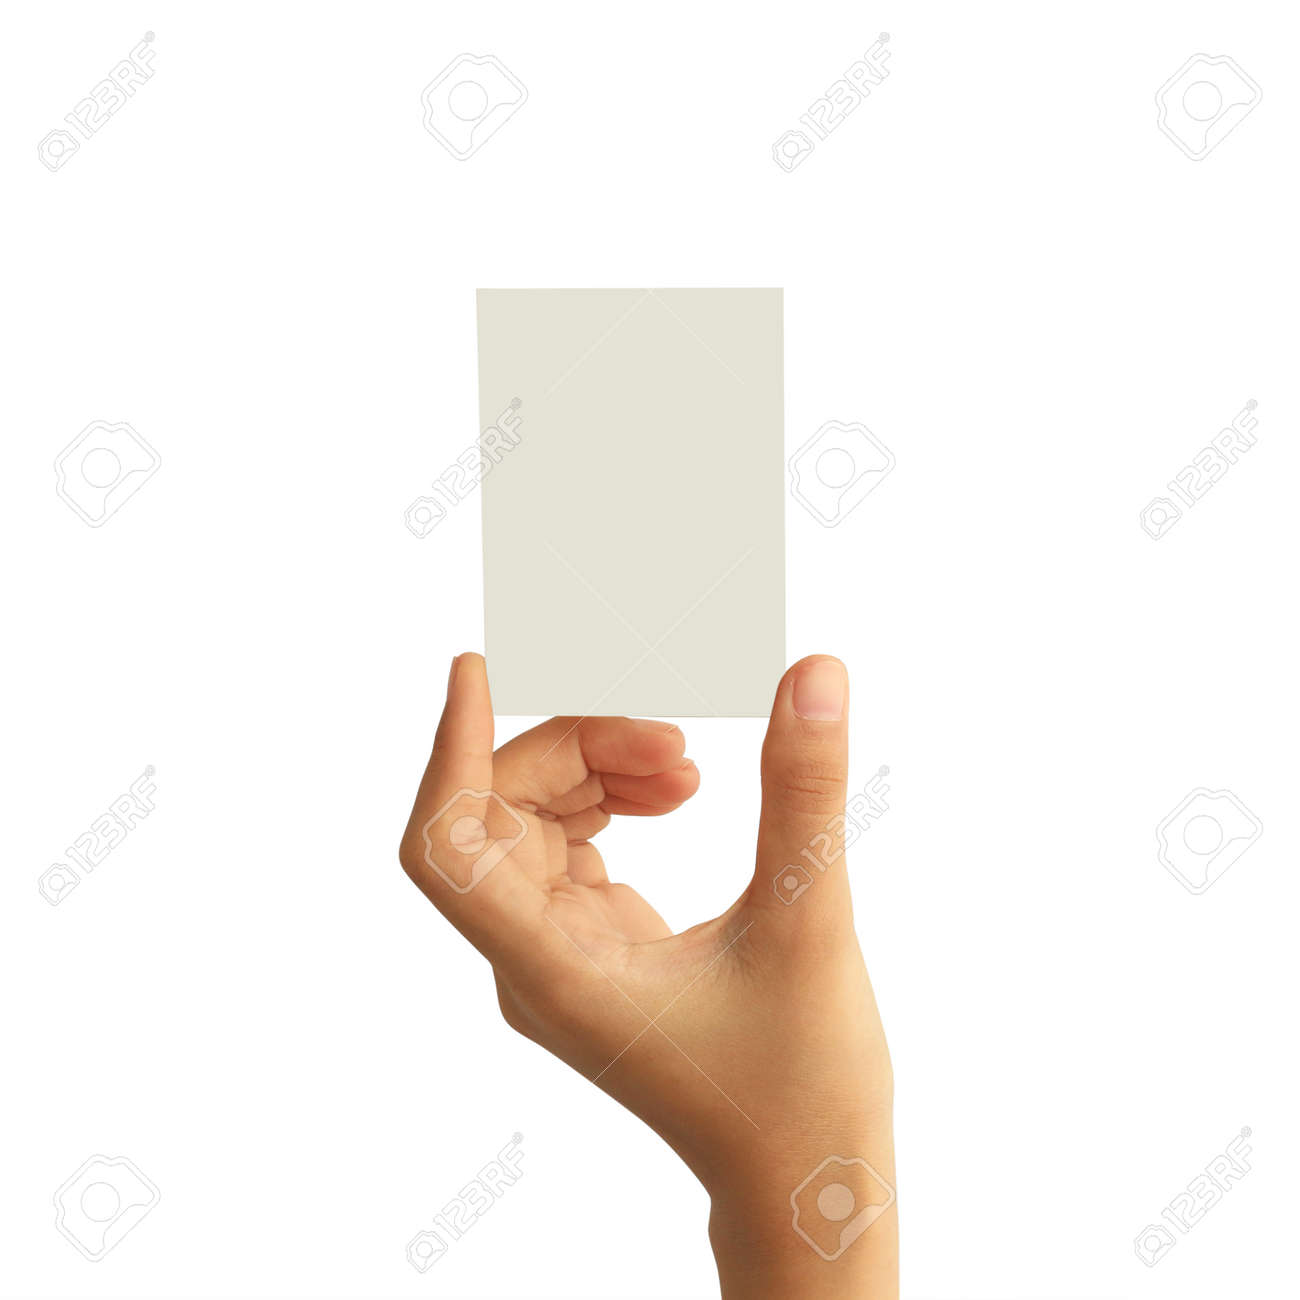 Woman hand holding blank paper business card isolated on white background - 134238452